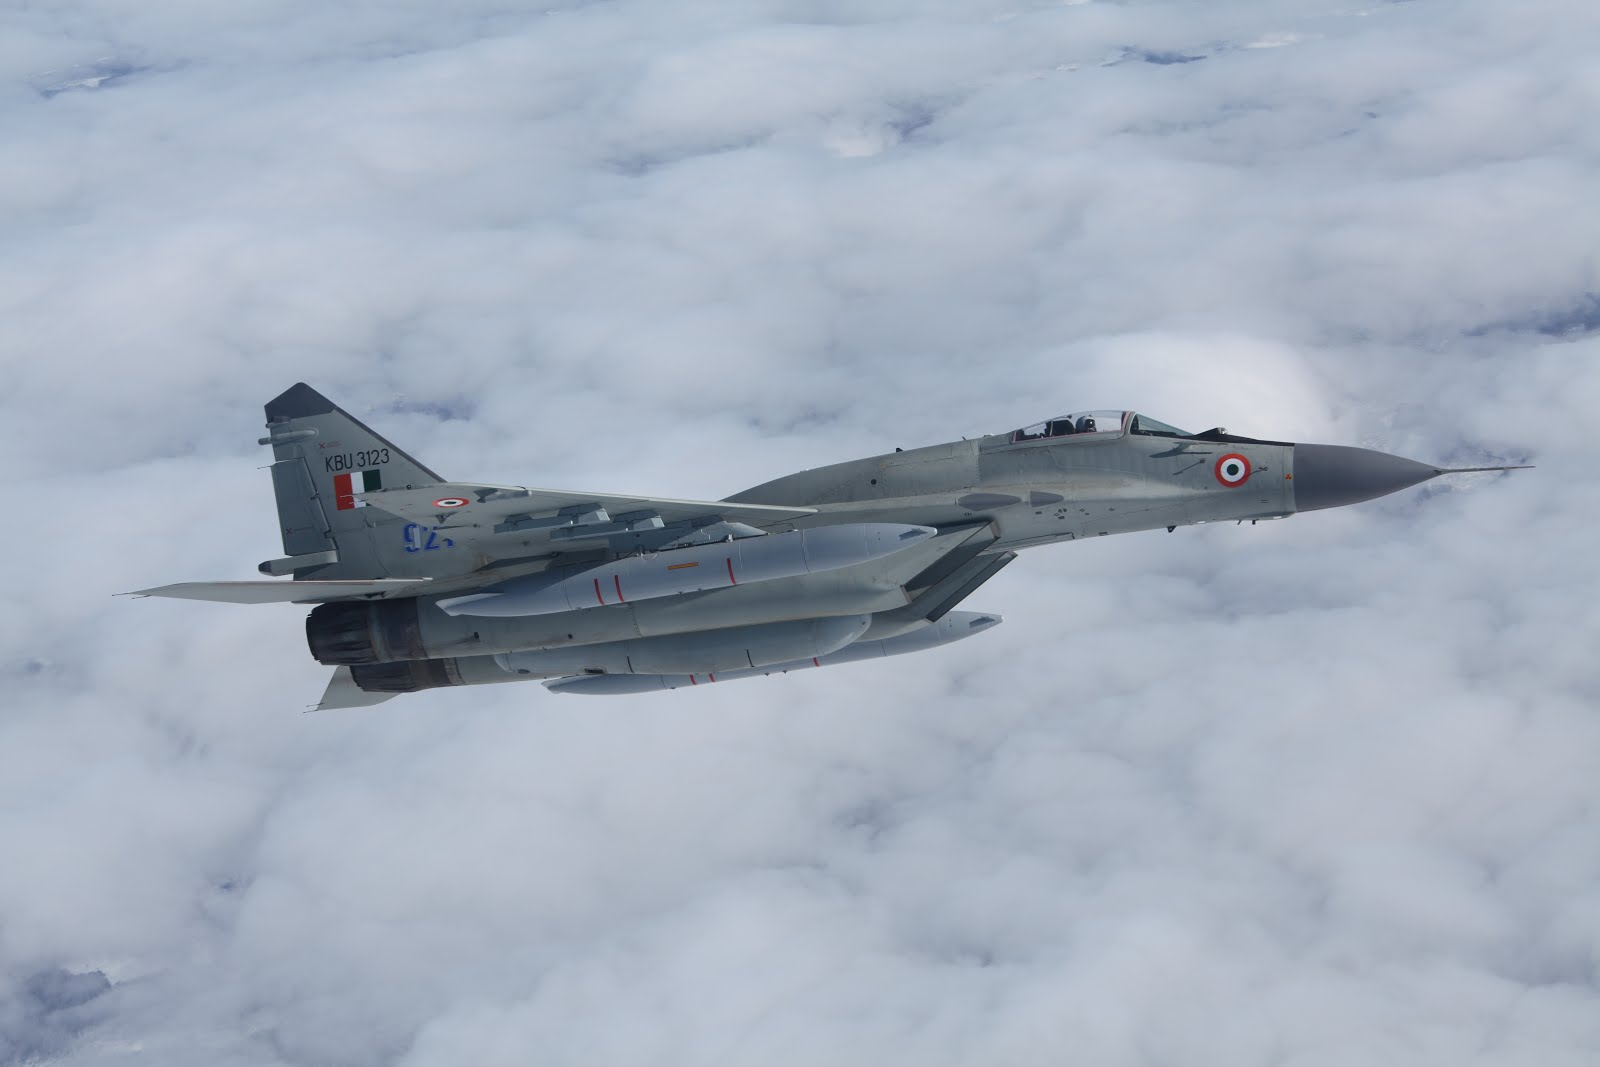 Indian Air Force new upgraded Mig-29 air-superiority fighter(2012)